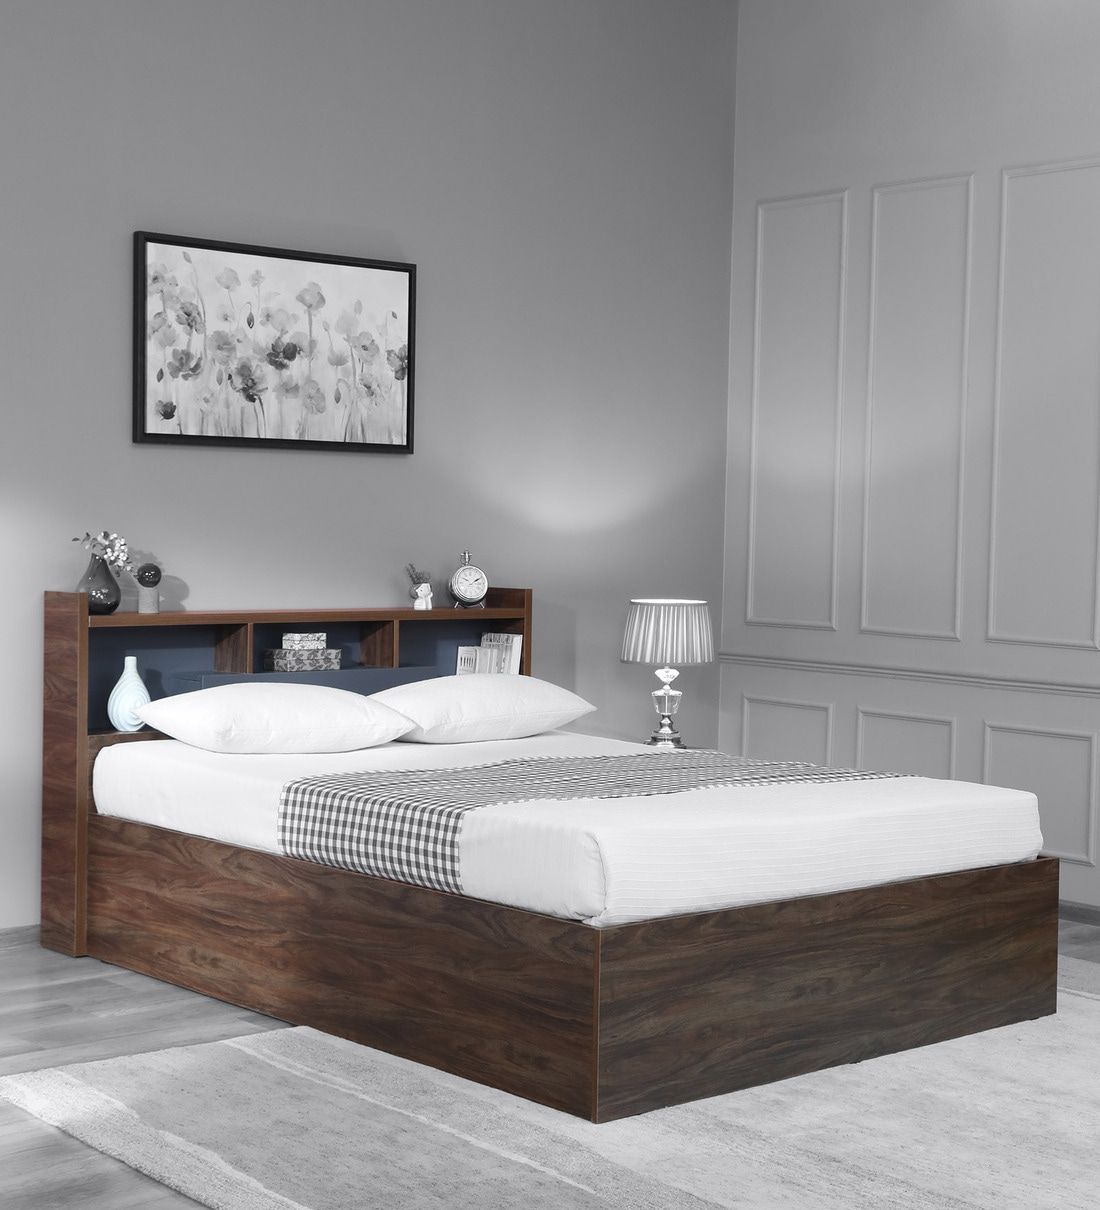 Buy Ivanka Queen Size Bed With Headboard Box Storage In Natural Walnut Colour Casacraft By Pepperfry Online Modern Queen Size Beds Beds Furniture Pepperfry Product